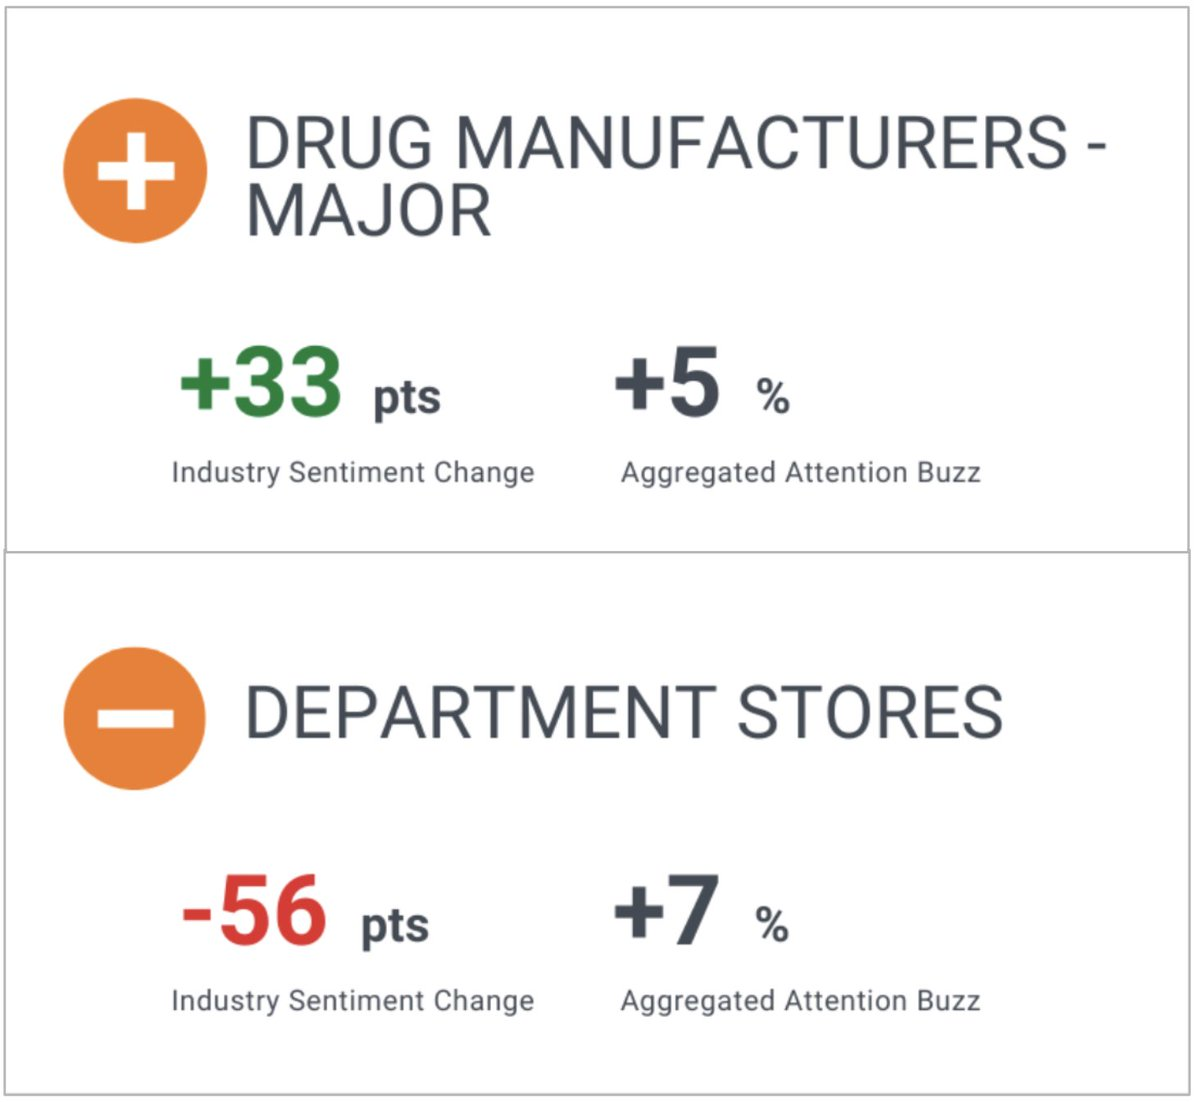 Check out our weekly market movers: Major Drug Manufacturers ⬆, Department Stores ⬇️. Find out which companies you should keep an eye on or subscribe today: https://t.co/Q5FzHCcQXt https://t.co/i1Qk0LCNUB